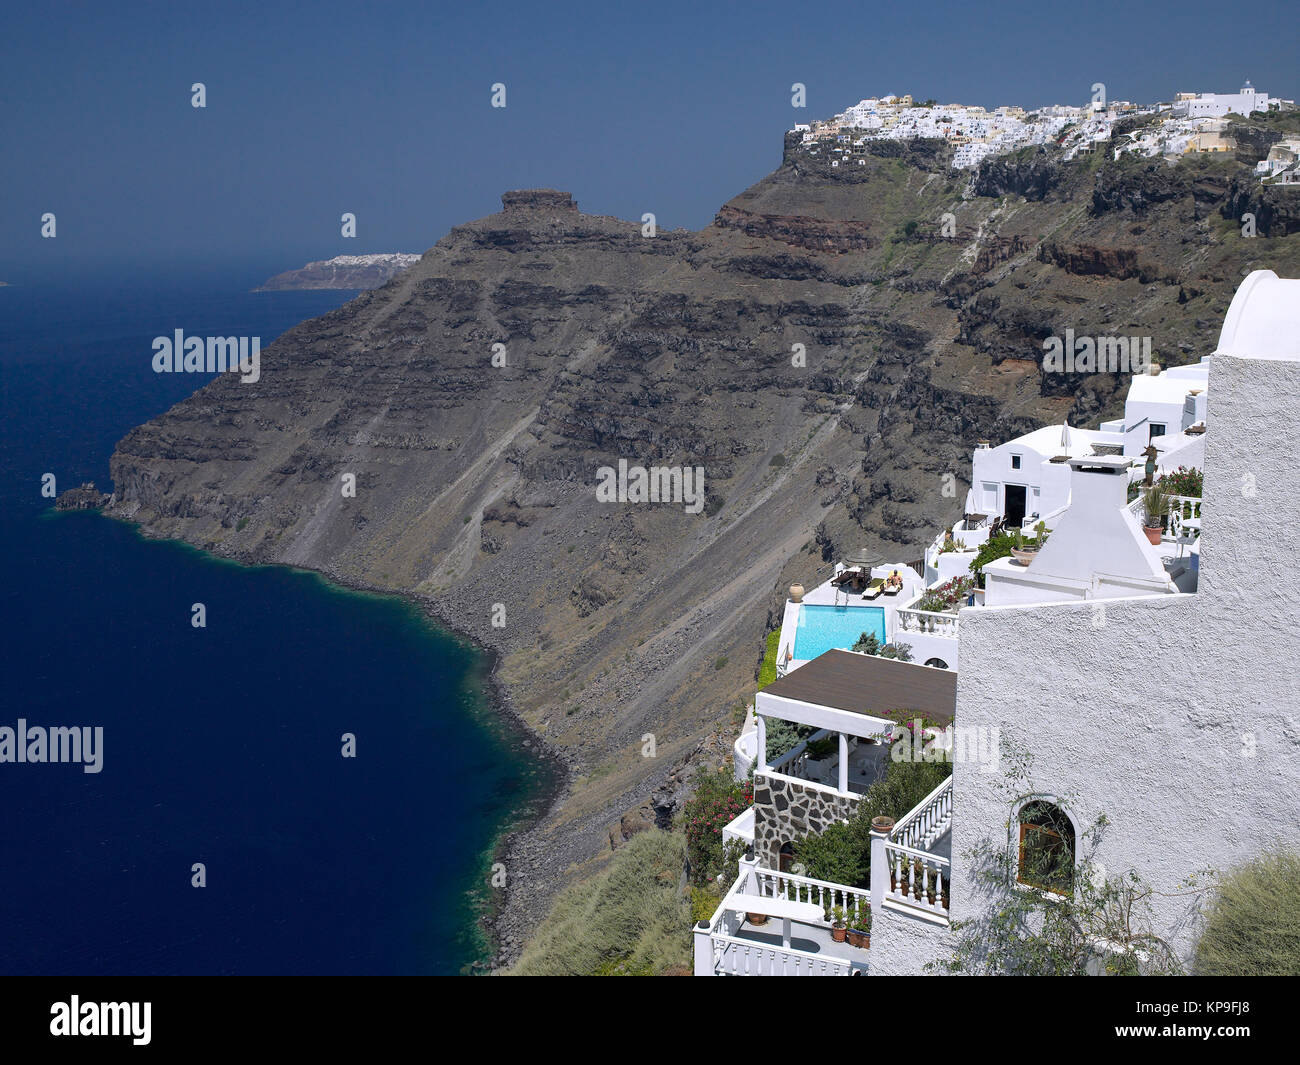 Cliffs on the volcanic island of Santorini in the Aegean Sea, about 200km southeast of mainland Greece. - Stock Image